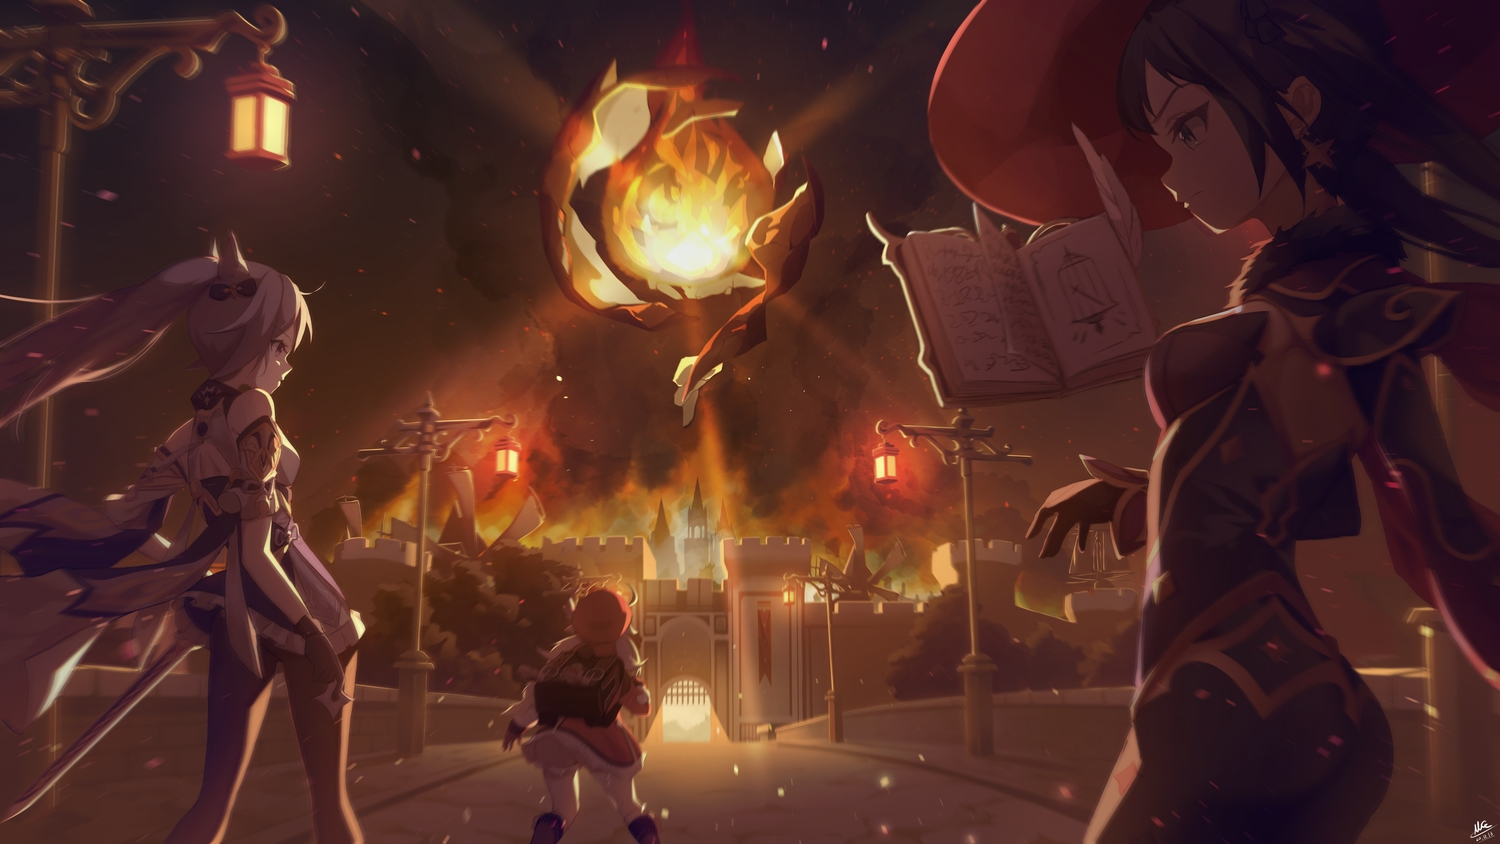 book building fire genshin_impact hat keqing_(genshin_impact) klee_(genshin_impact) long_hair magica mona_(genshin_impact) sword twintails weapon witch witch_hat